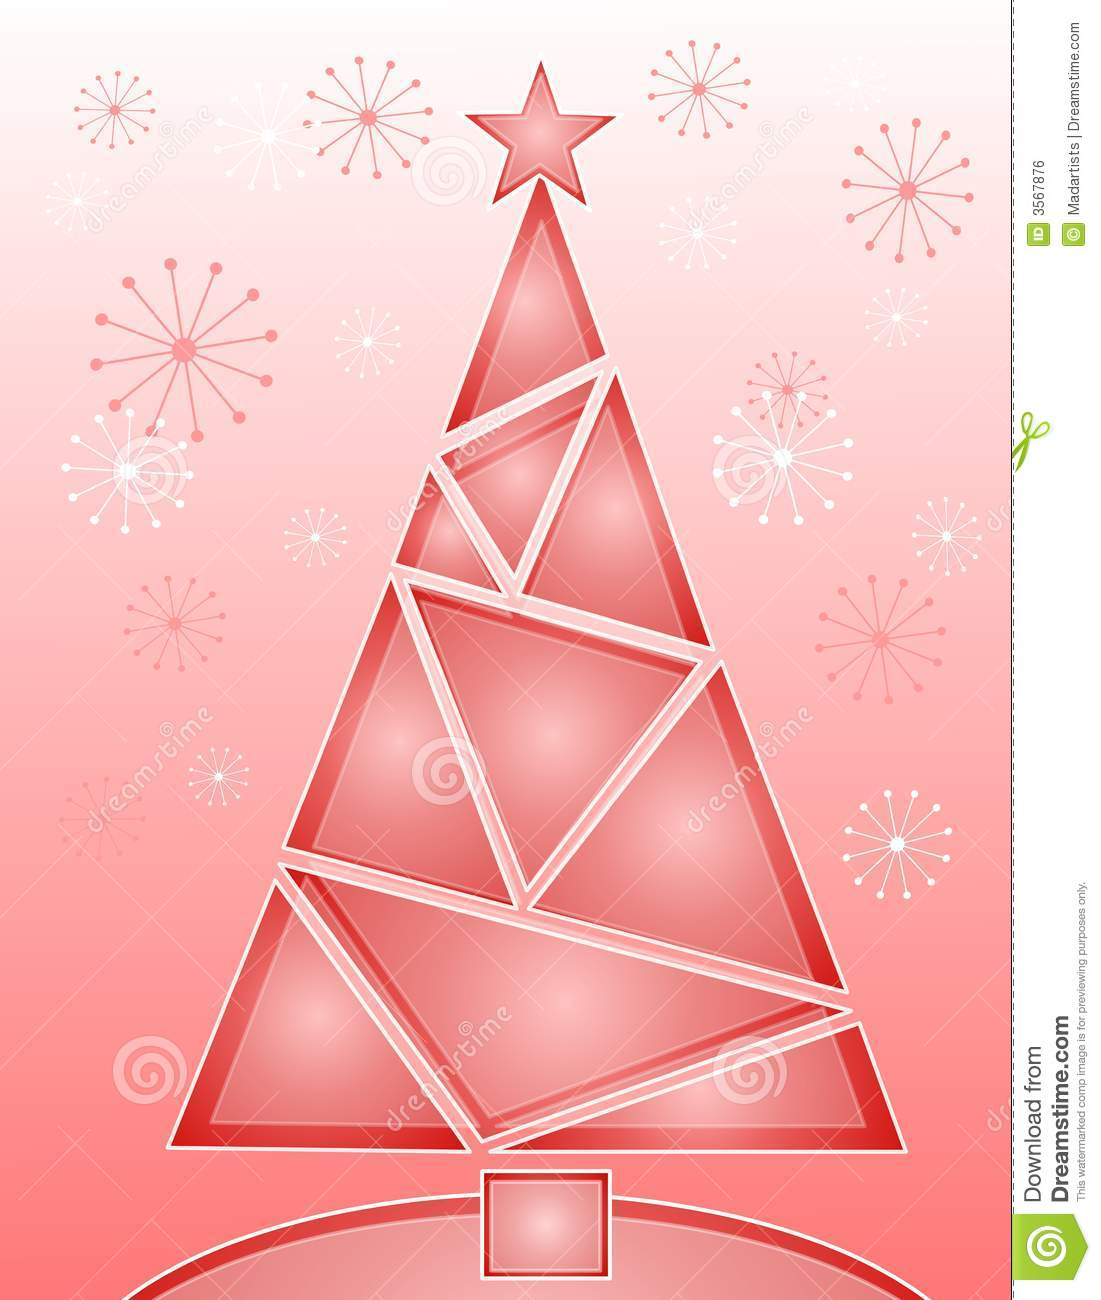 Crystal Pink Christmas Tree Royalty Free Stock Image